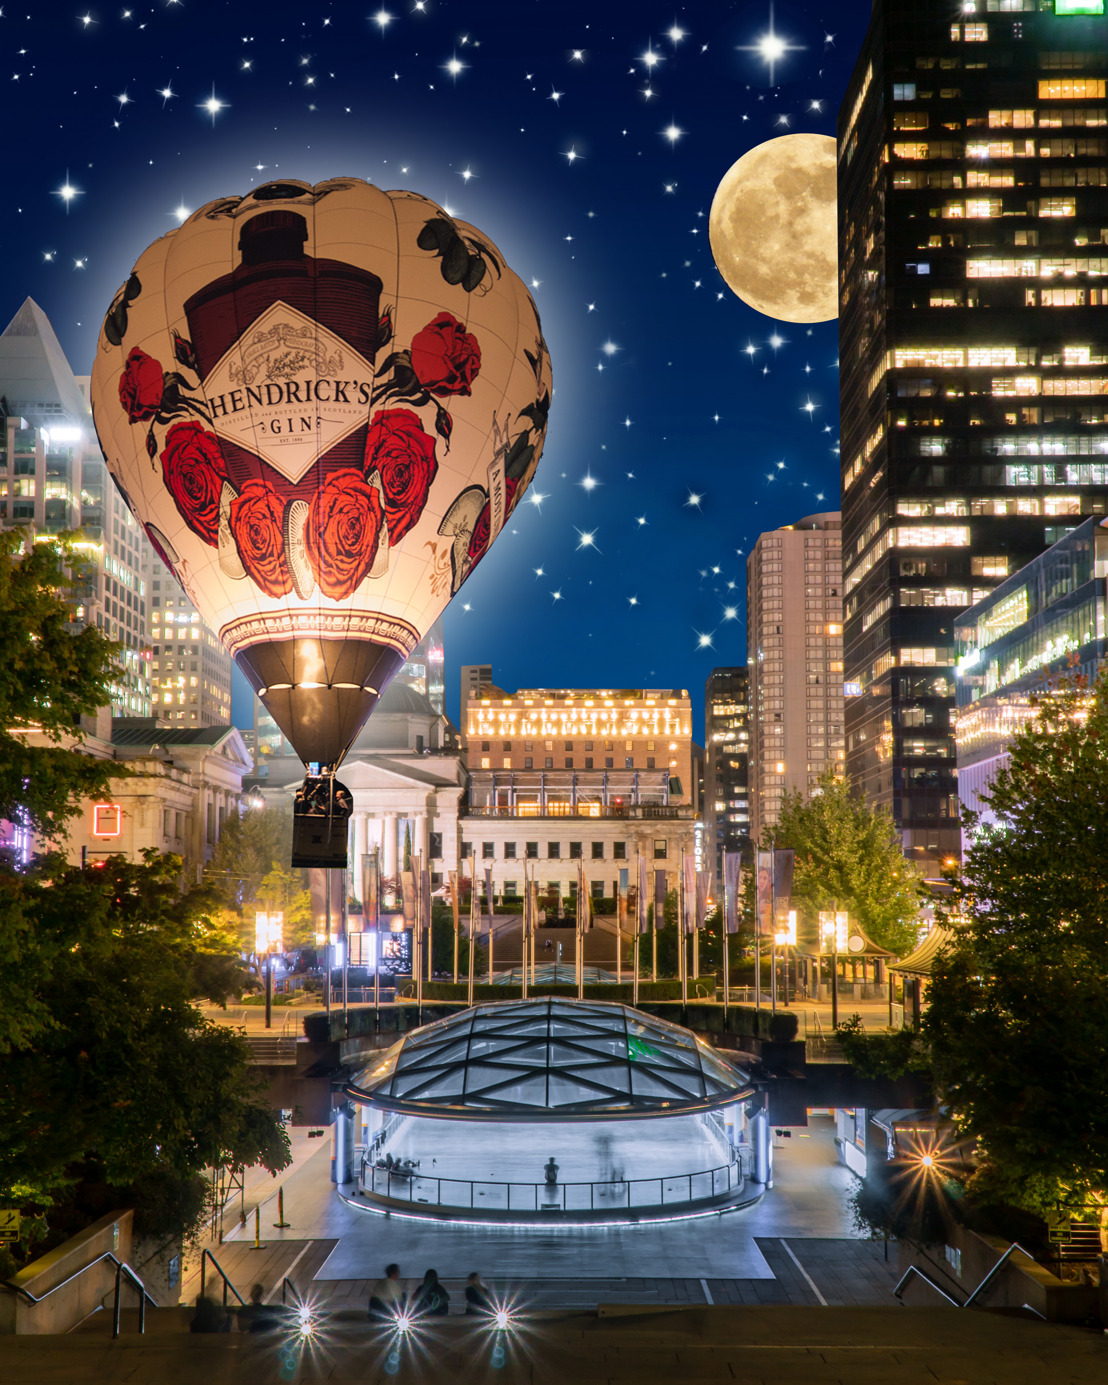 HENDRICK'S GIN DEBUTS A.W.E.V.A.N.A.I.R. AND MAKES HISTORY AS THE FIRST EVER HOT AIR BALLOON TO SOAR ABOVE THE INAUGURAL HONDA CELEBRATION OF LIGHT DOWNTOWN